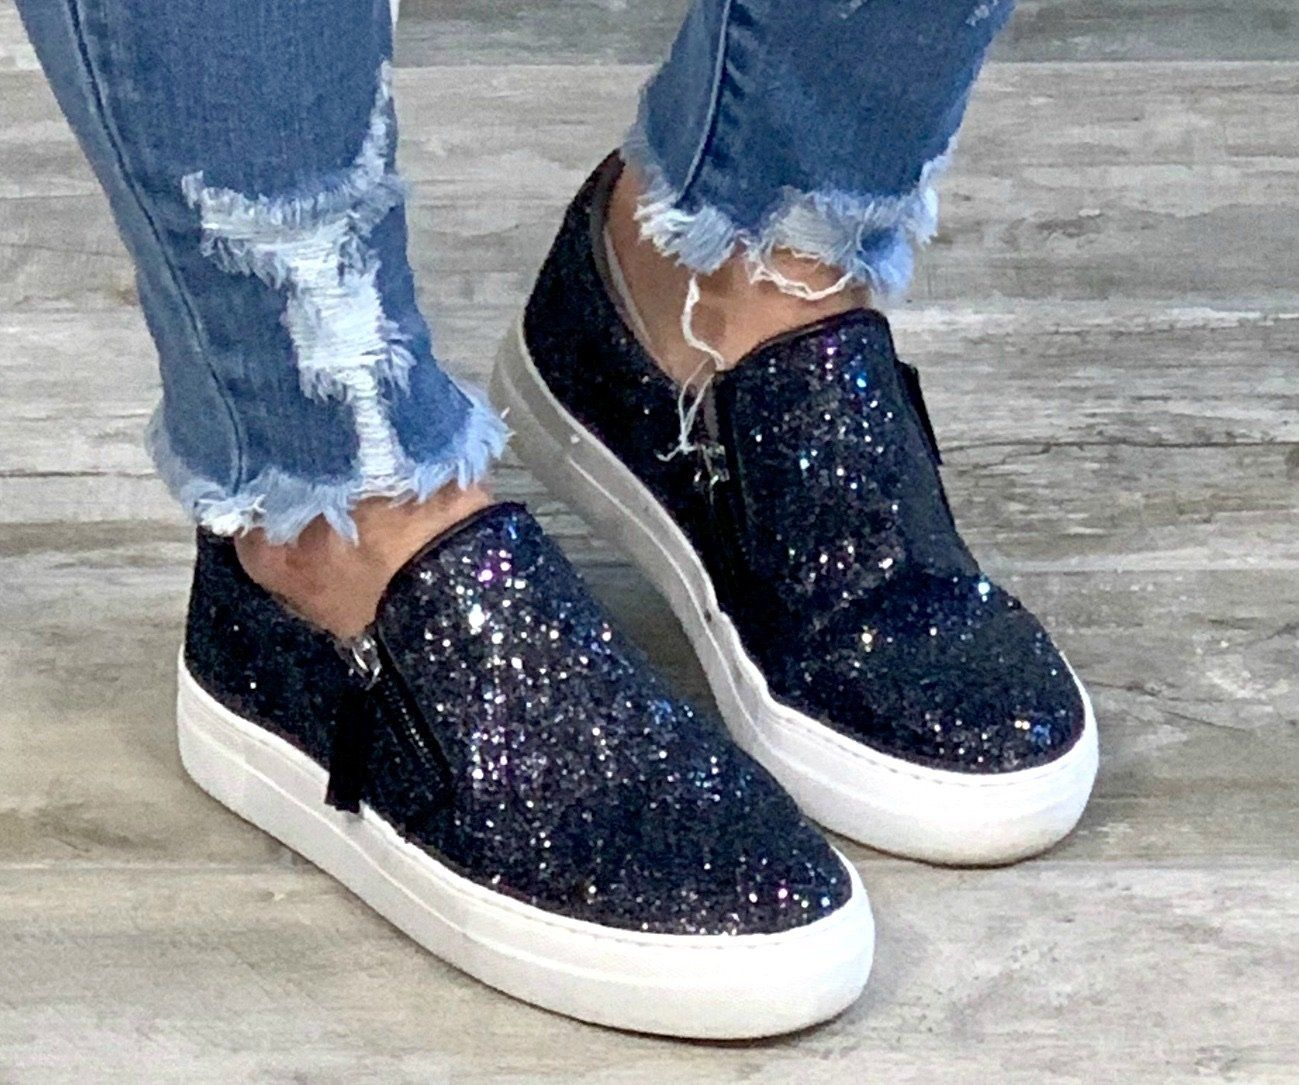 Step Sparkle Repeat Sneakers?**SHOES MAY ARRIVE WITHOUT BOX IN ORDER TO SAVE ON SHIPPING.?**ALL SHOE SALES ARE FINAL!!